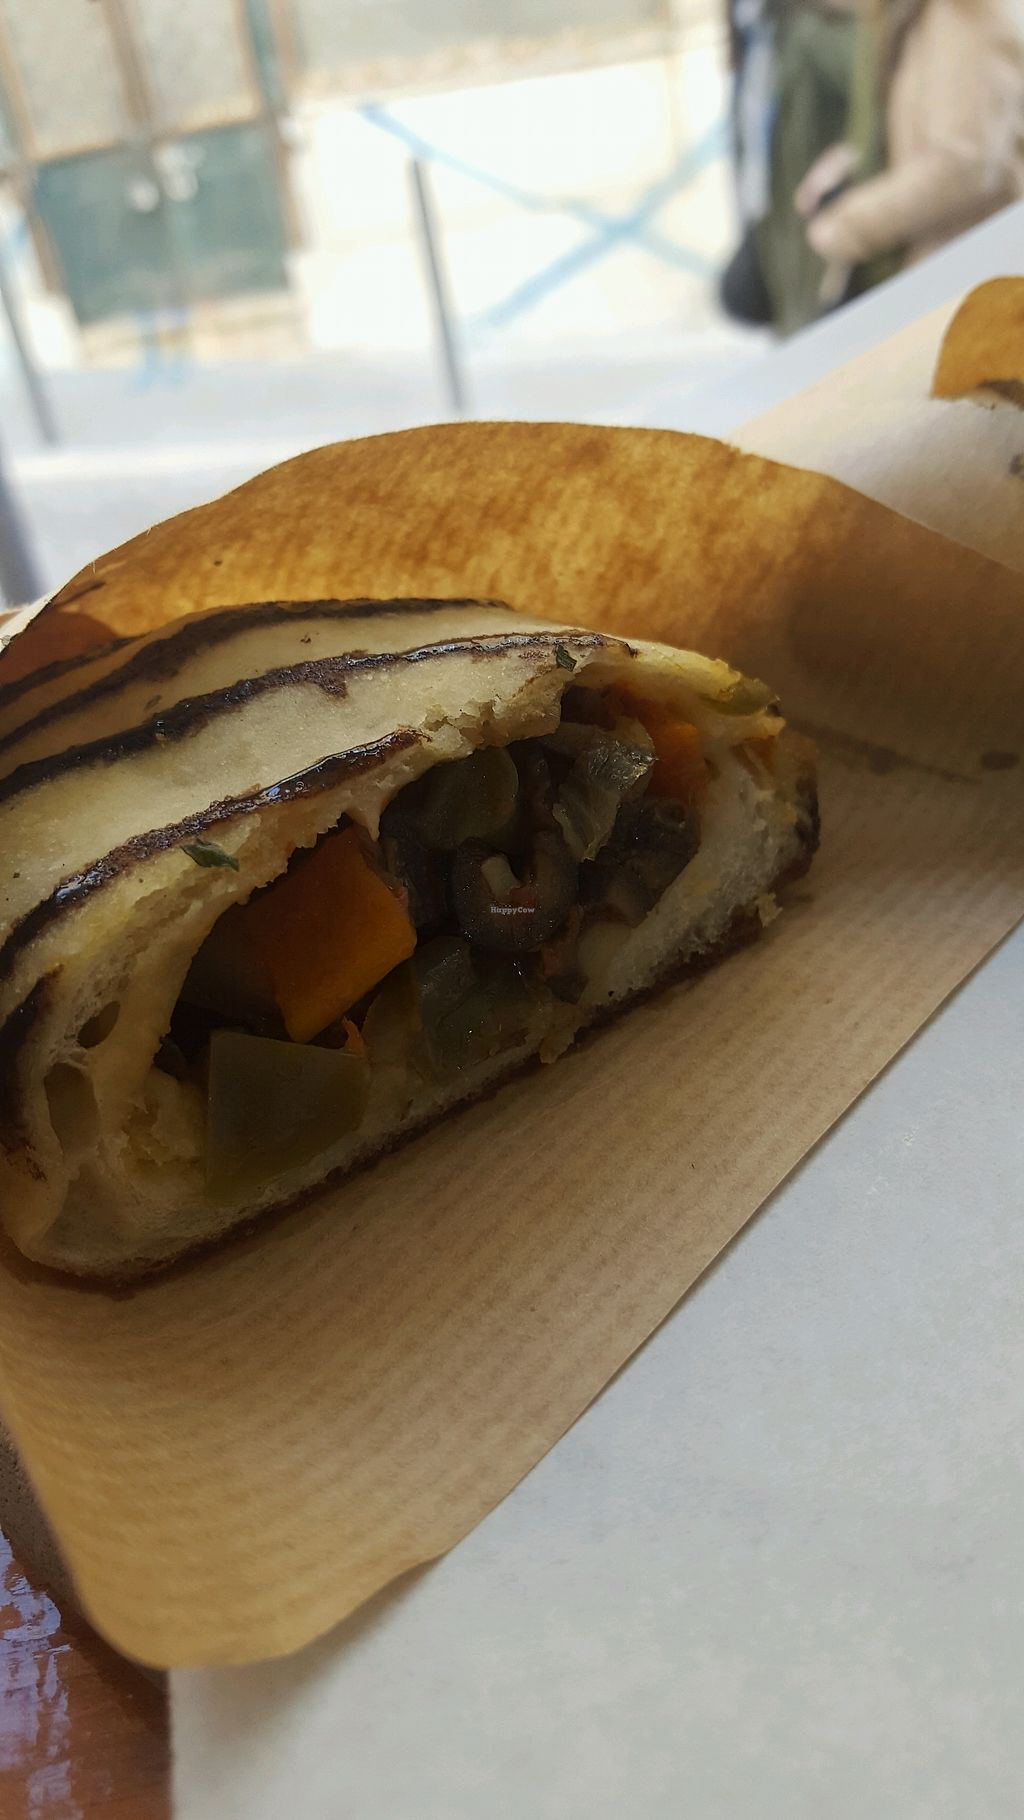 """Photo of Primo Basilico  by <a href=""""/members/profile/loveforveganfood"""">loveforveganfood</a> <br/>calzone <br/> February 24, 2018  - <a href='/contact/abuse/image/36324/363264'>Report</a>"""